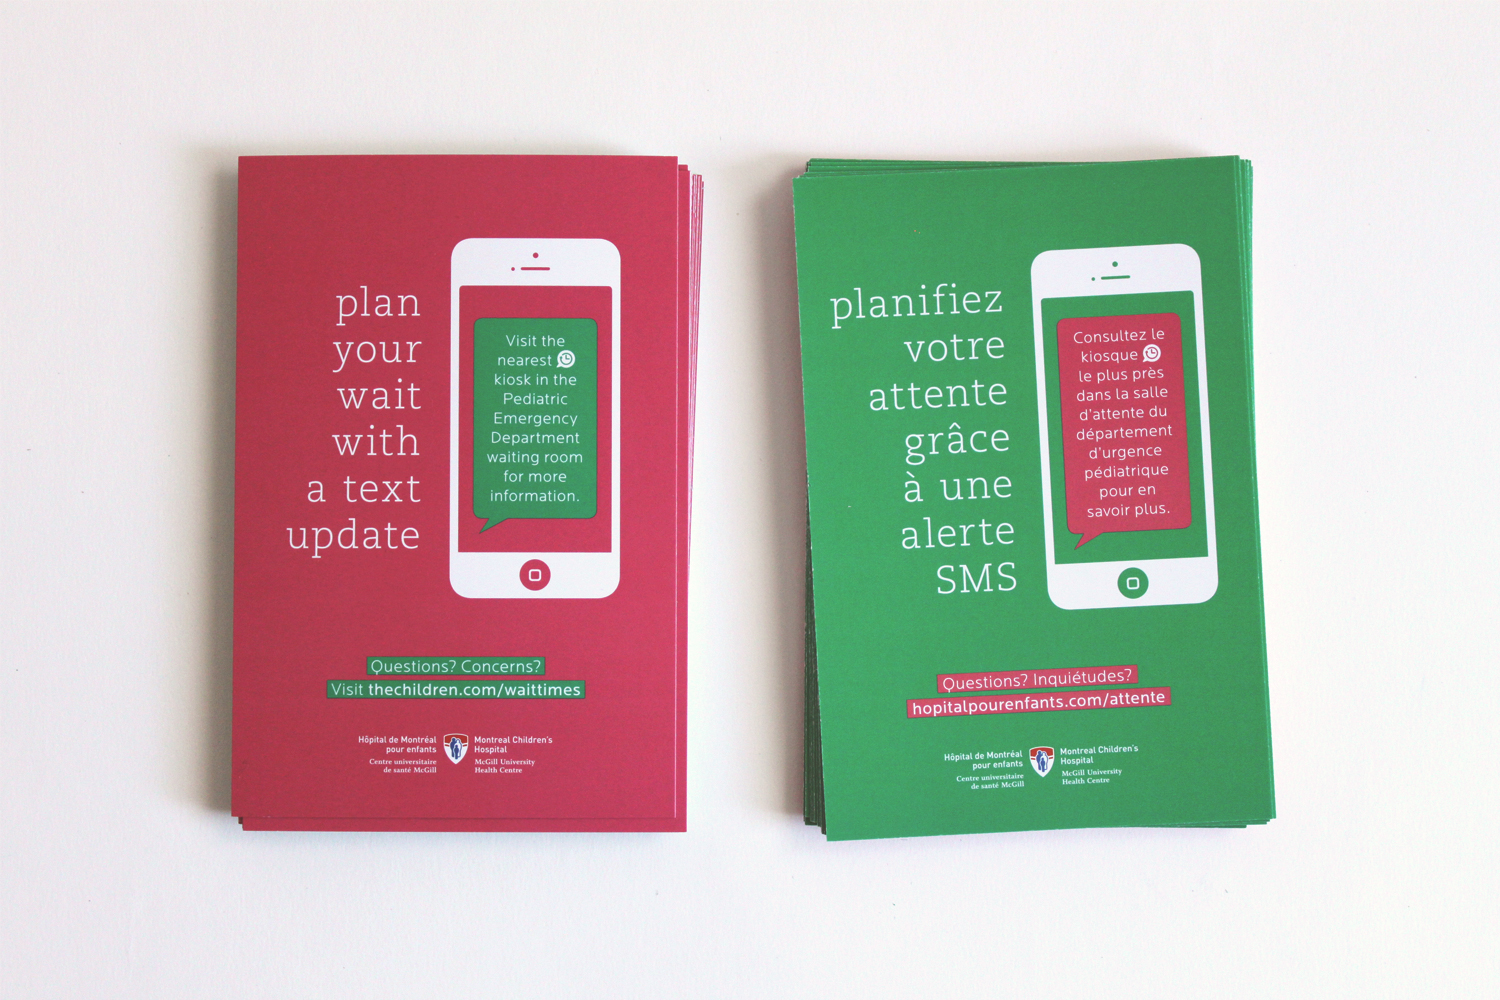 flyer design for wait kiosk project, plan your wait with a text update, french and english, overhead view, the montreal's children's hospital logo, text message concept, print design